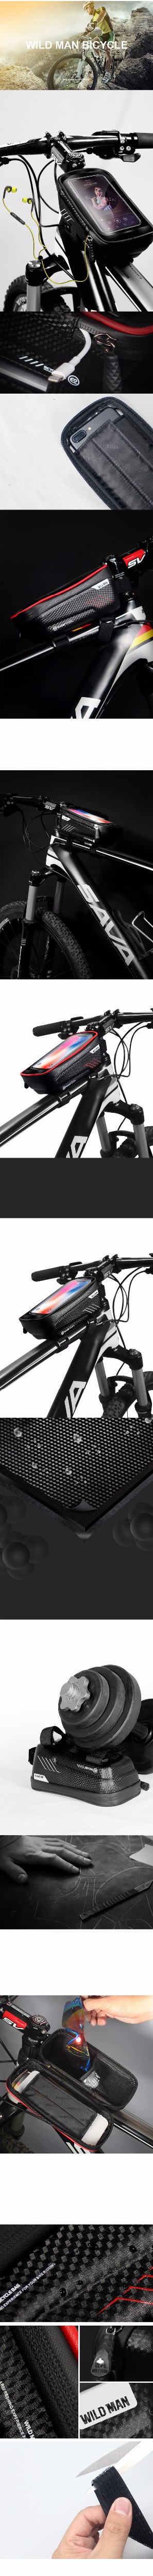 Discount WILD MAN Mountain Bike Bag Rainproof Waterproof Mtb Front Bag 6.2inch Mobile Phone Case Bicycle Top Tube Bag Cycling Accessories 3